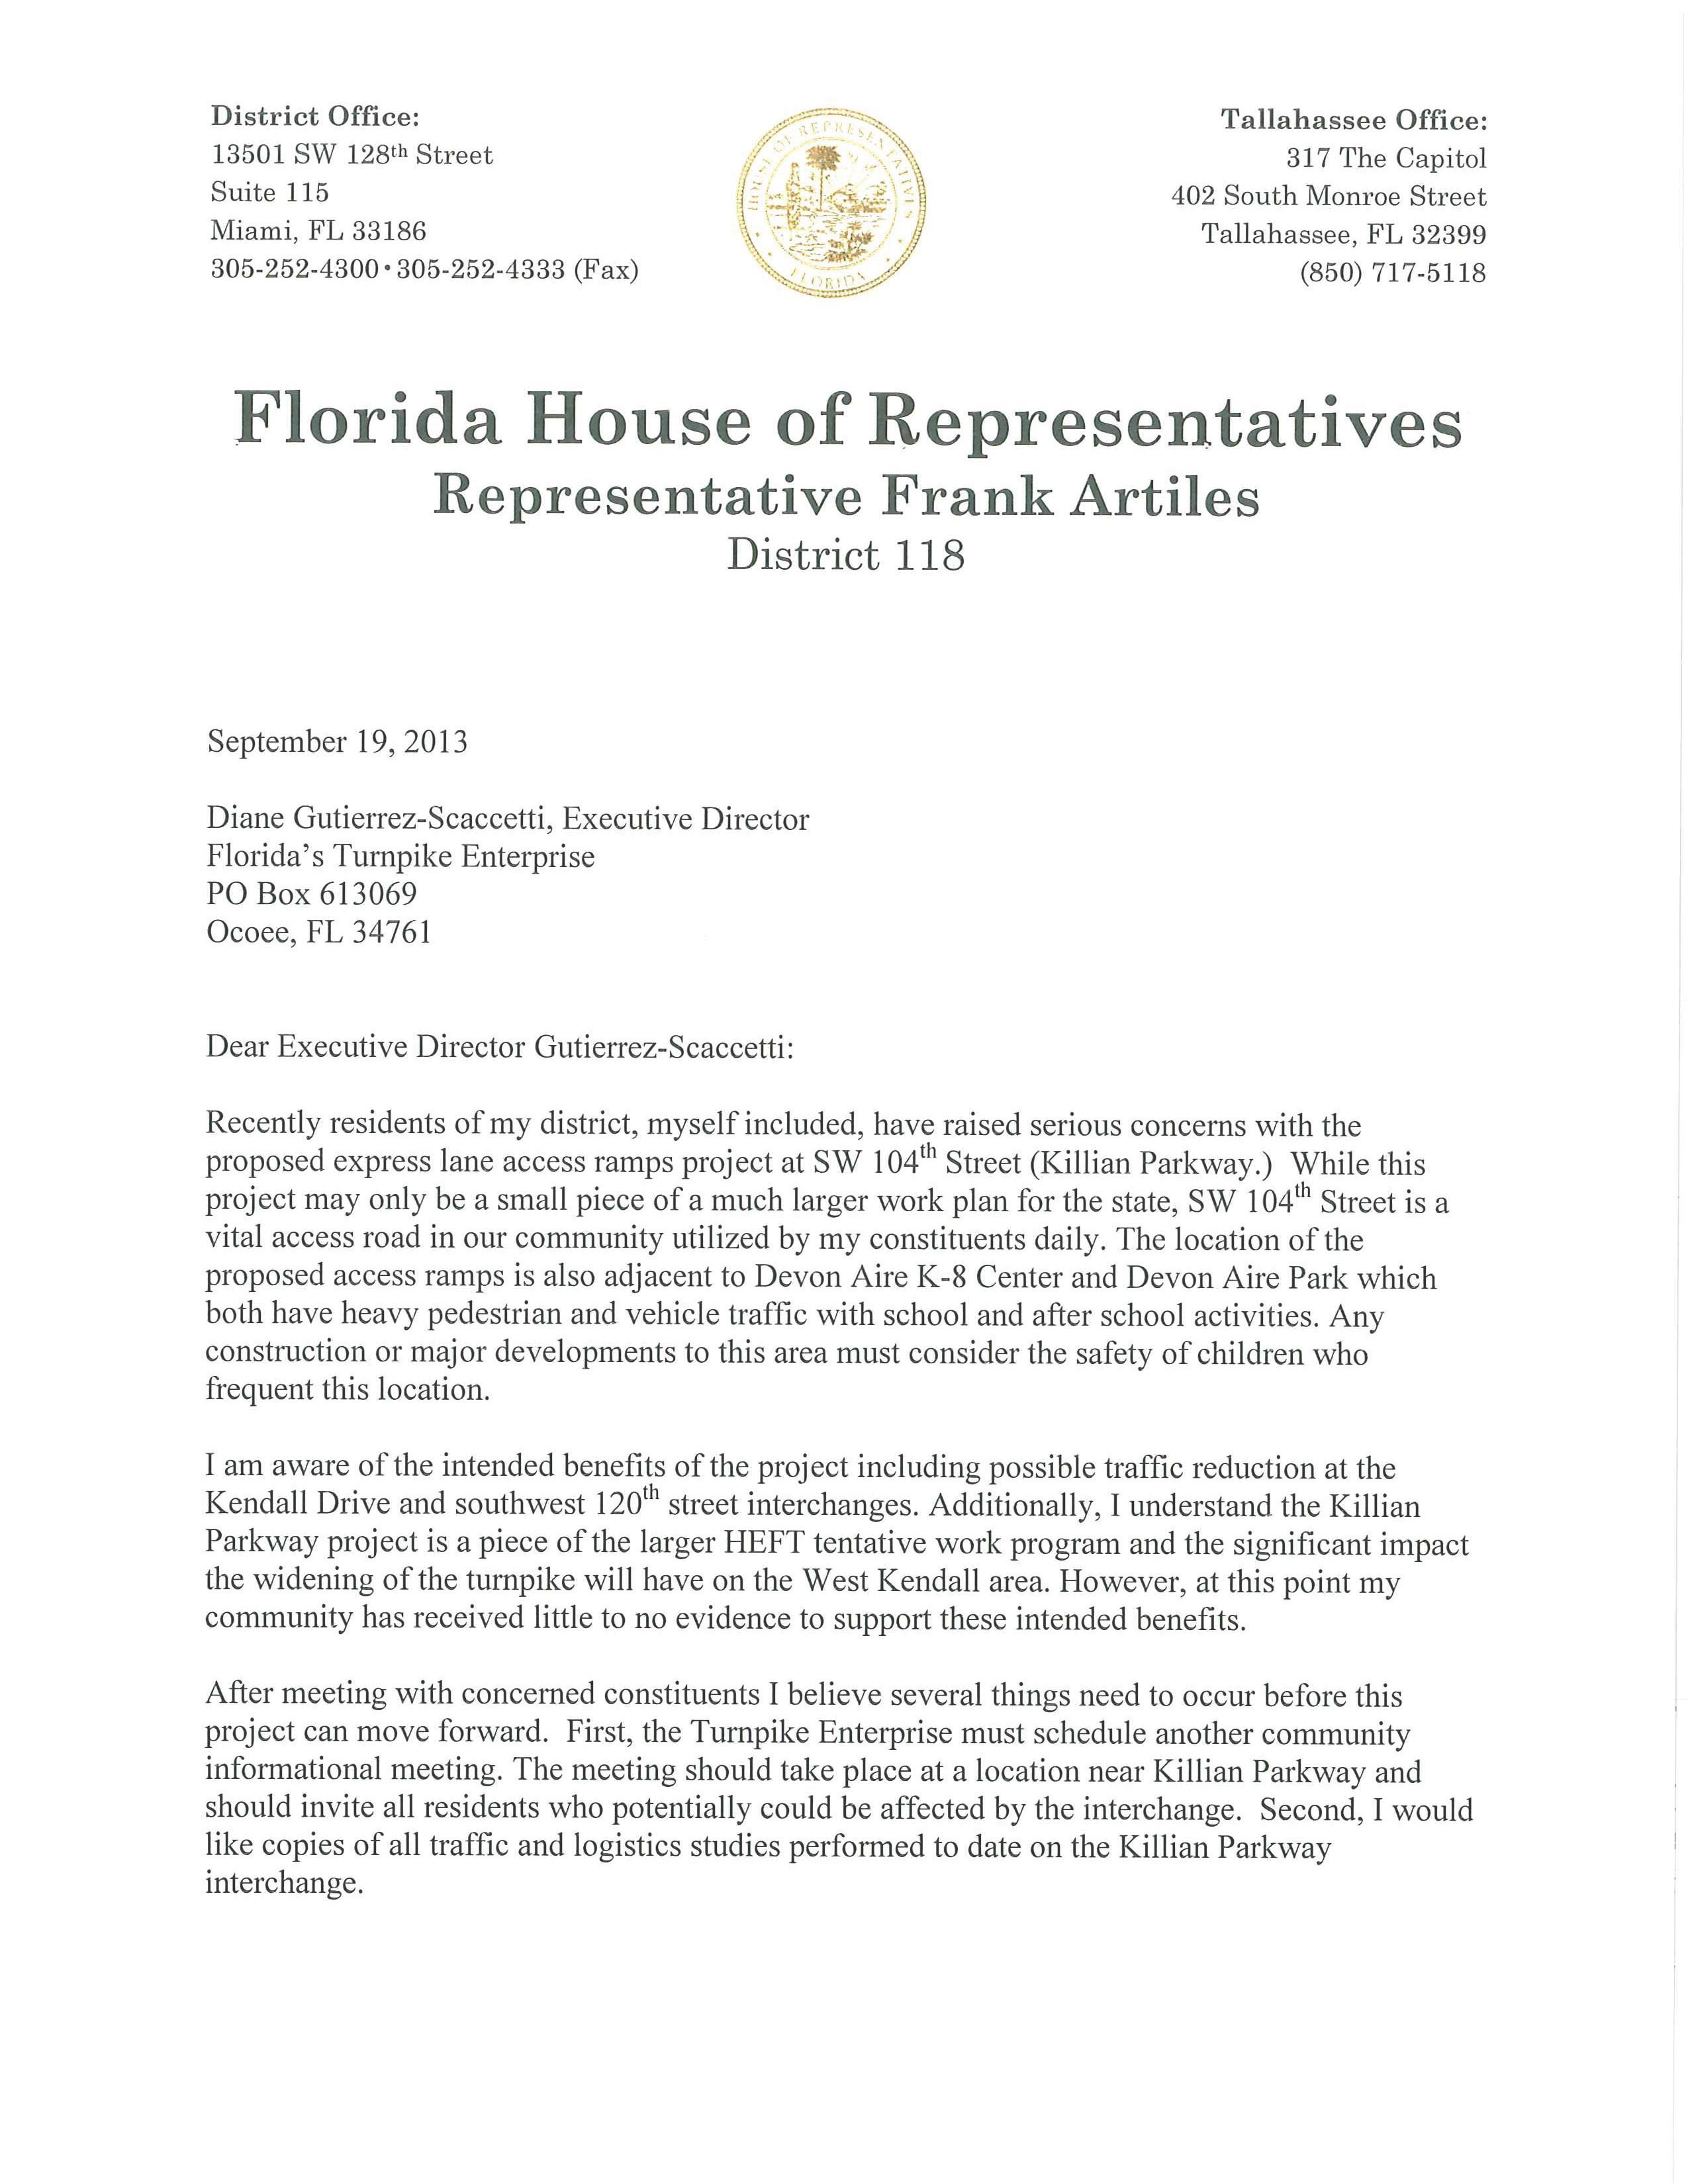 Florida Representative Frank Artiles letter to Florida Turnpike Enterprise and FDOT regarding Killian Parkway ramp